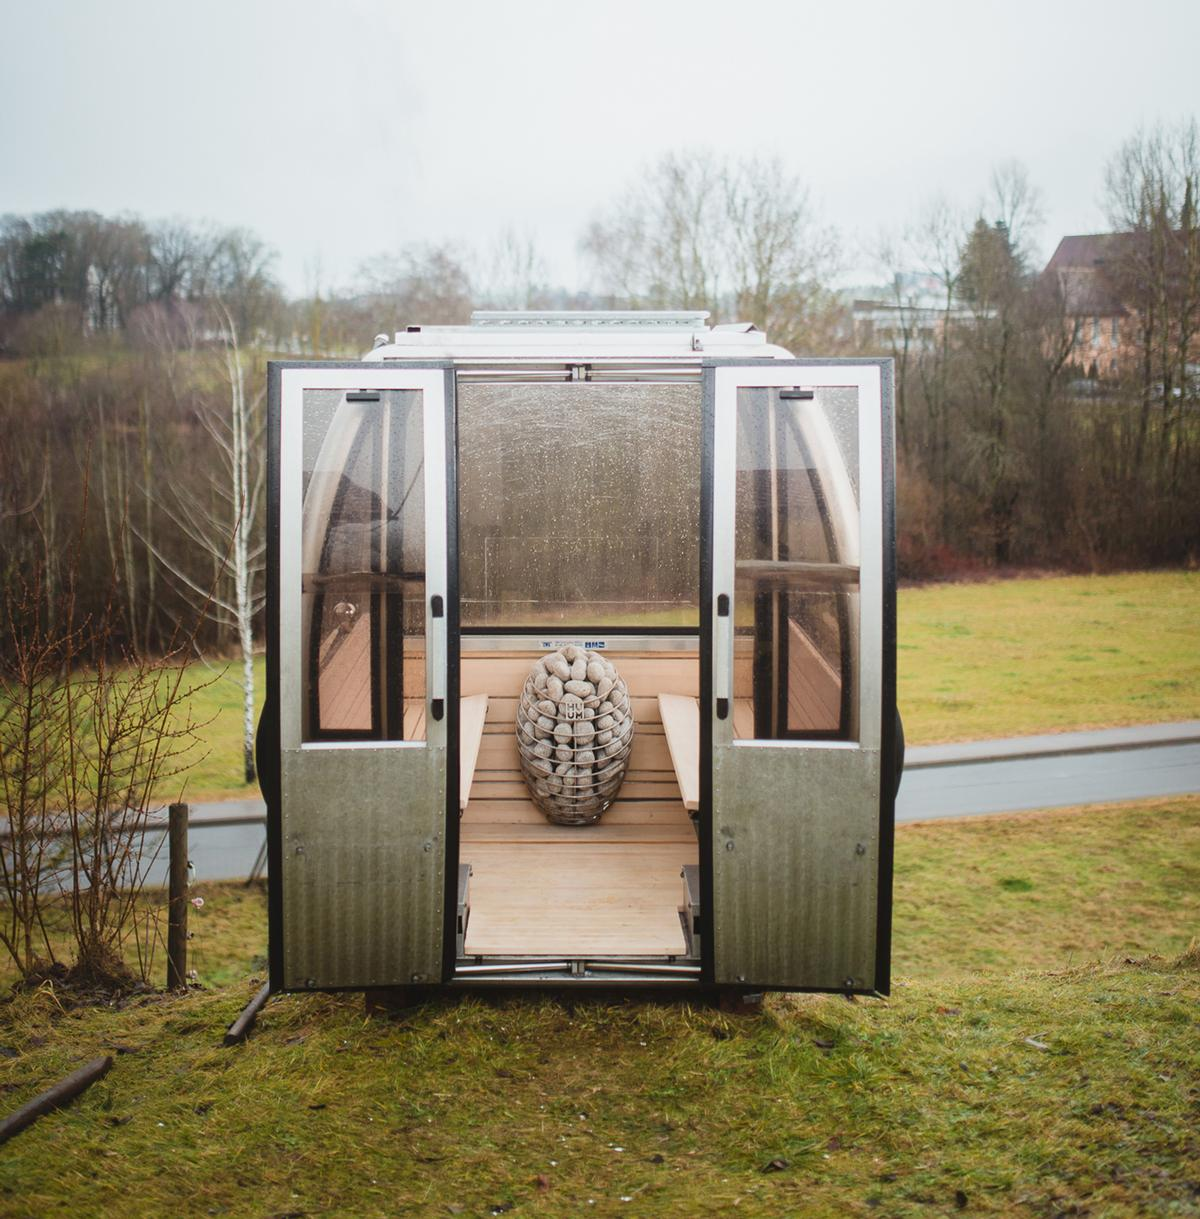 The sauna is small and lightweight, making it easy to transport from place to place / Saunagondel